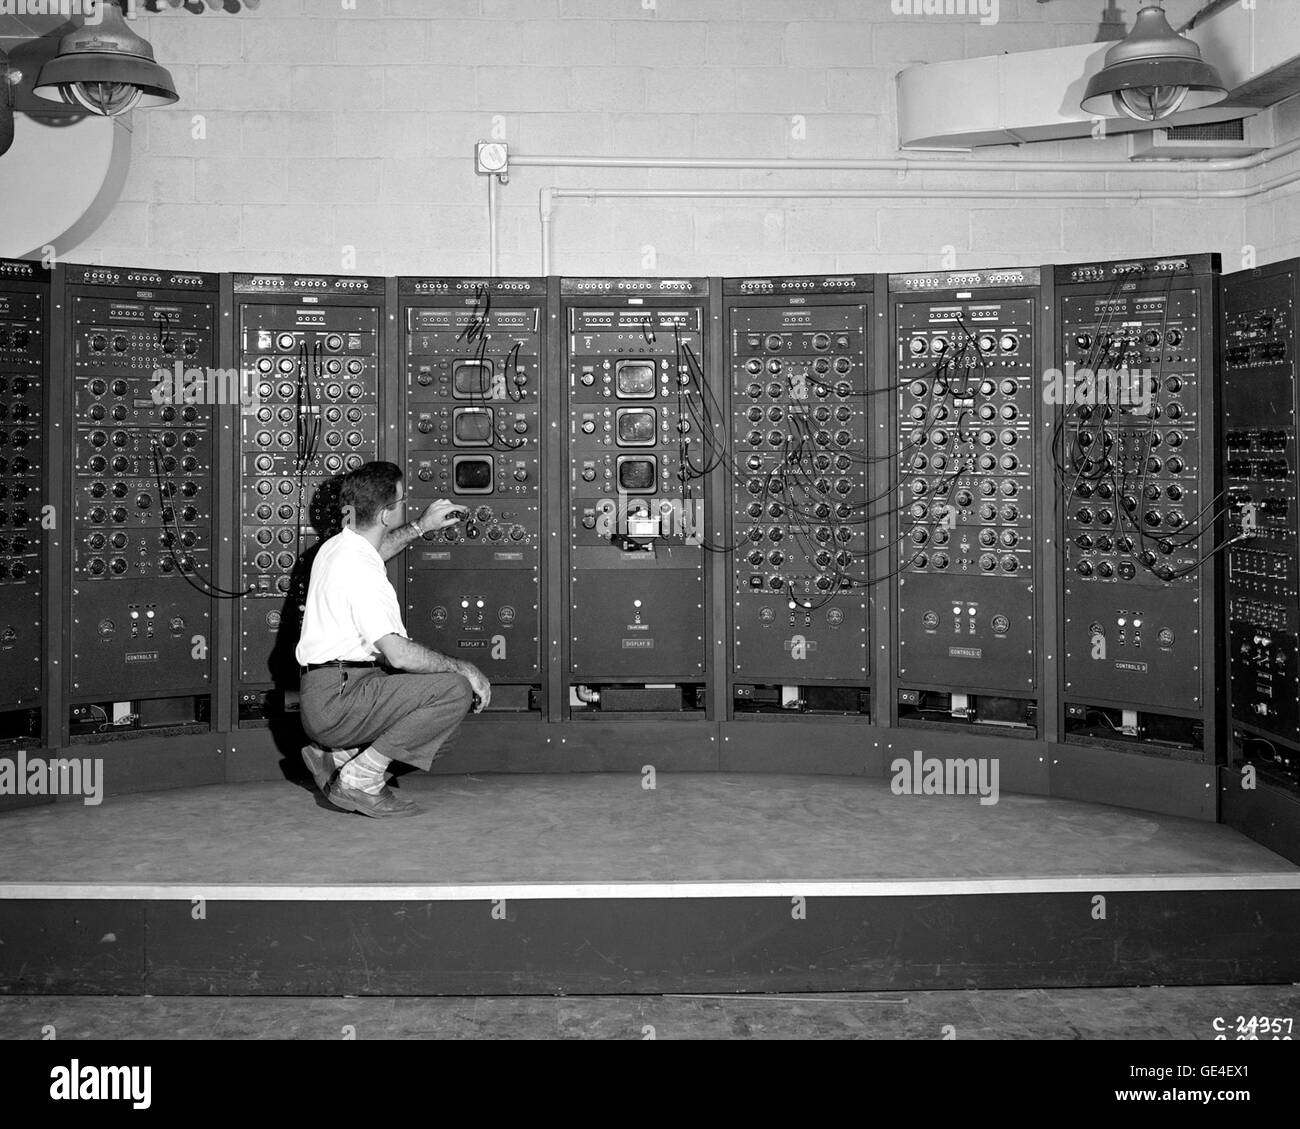 (September 28, 1949) Analog Computing Machine in the Fuel Systems Building. This is an early version of the modern - Stock Image